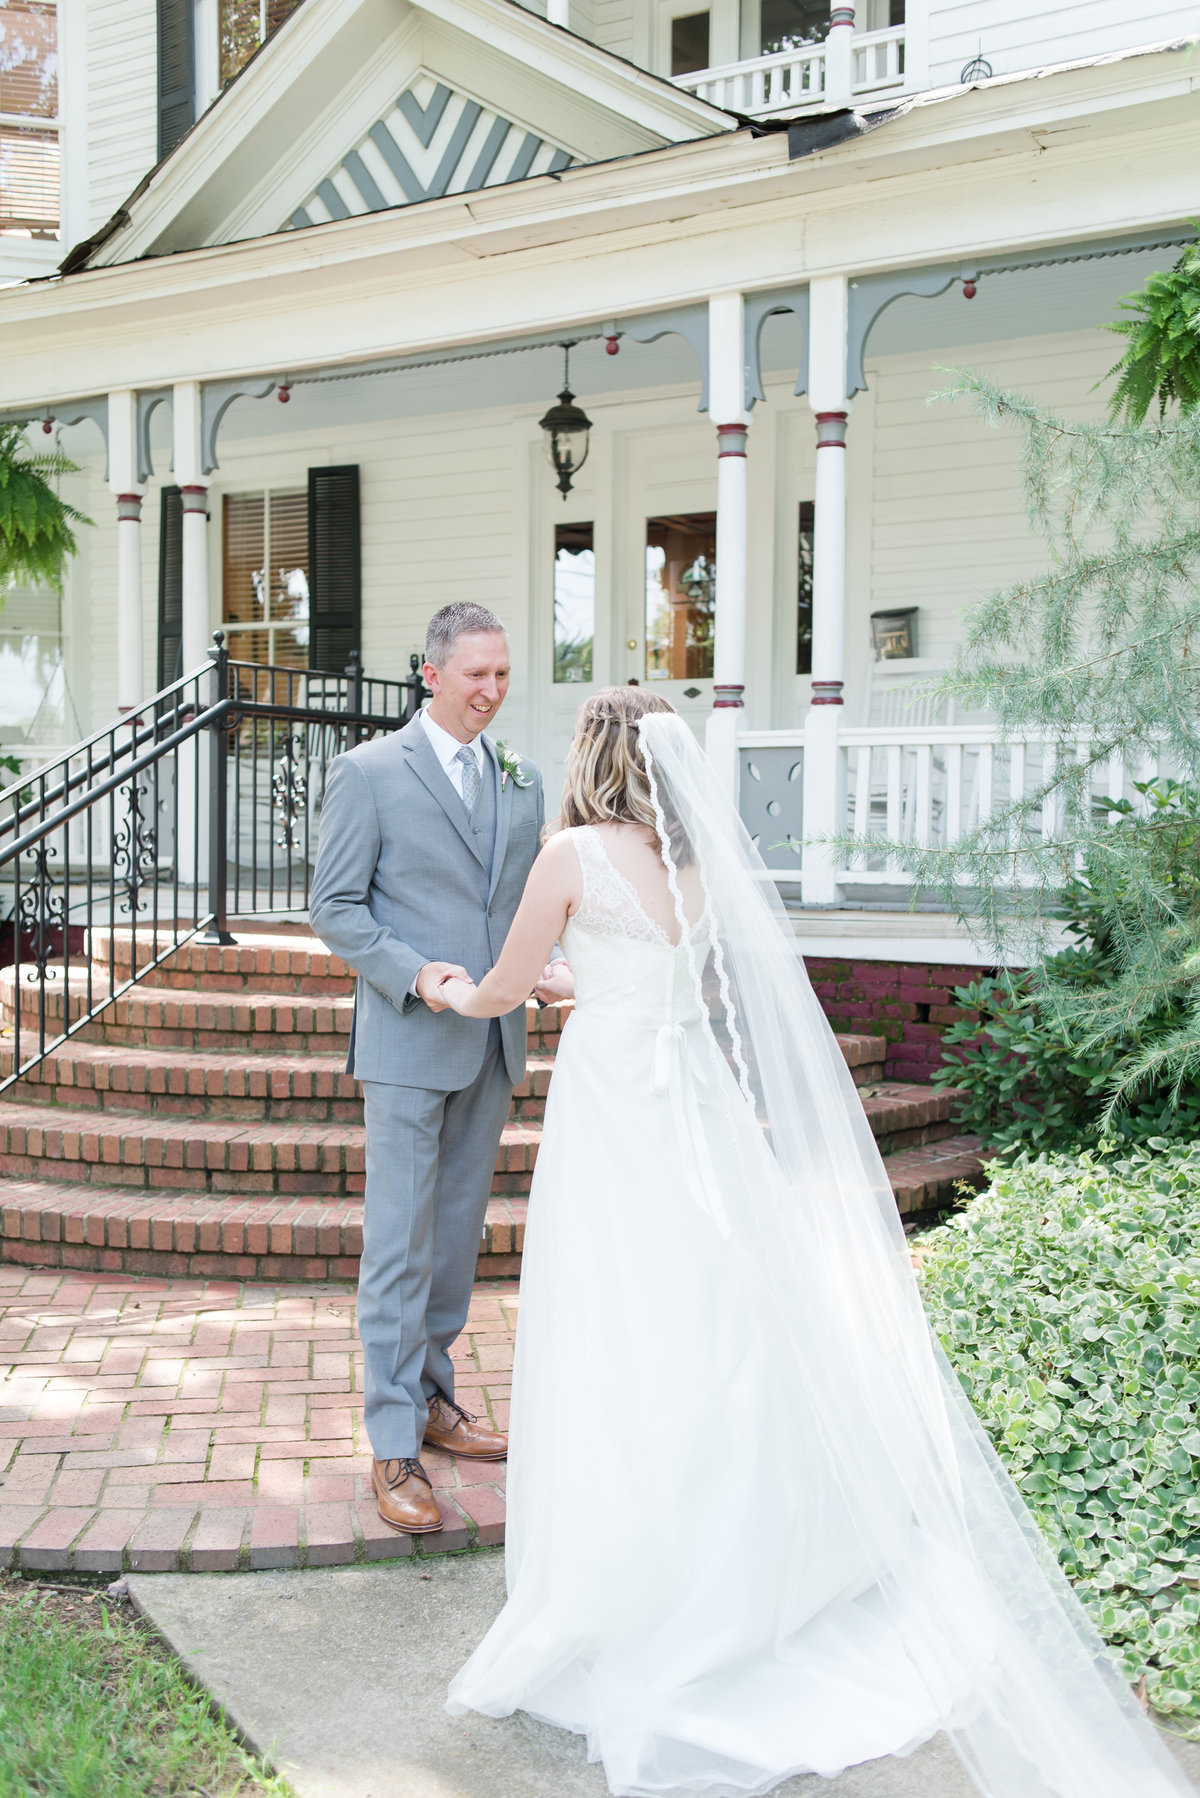 a bride having a first look with the father of the bride in front of  the house at Gardens at Gray Gables in Summerfield NC